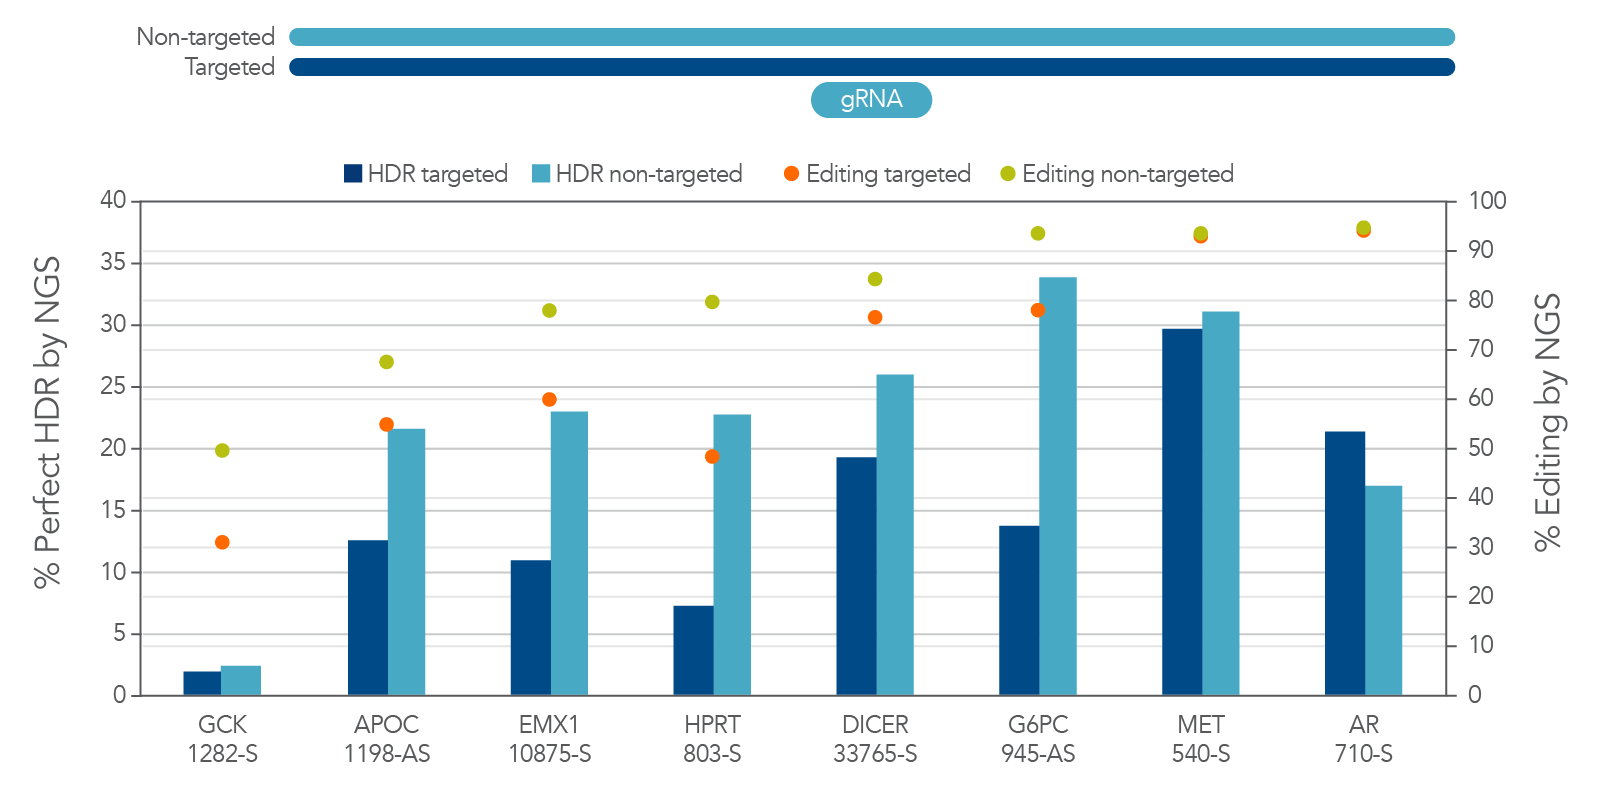 Use the non-targeted strand sequence as the HDR donor sequence for Cas12a HDR.